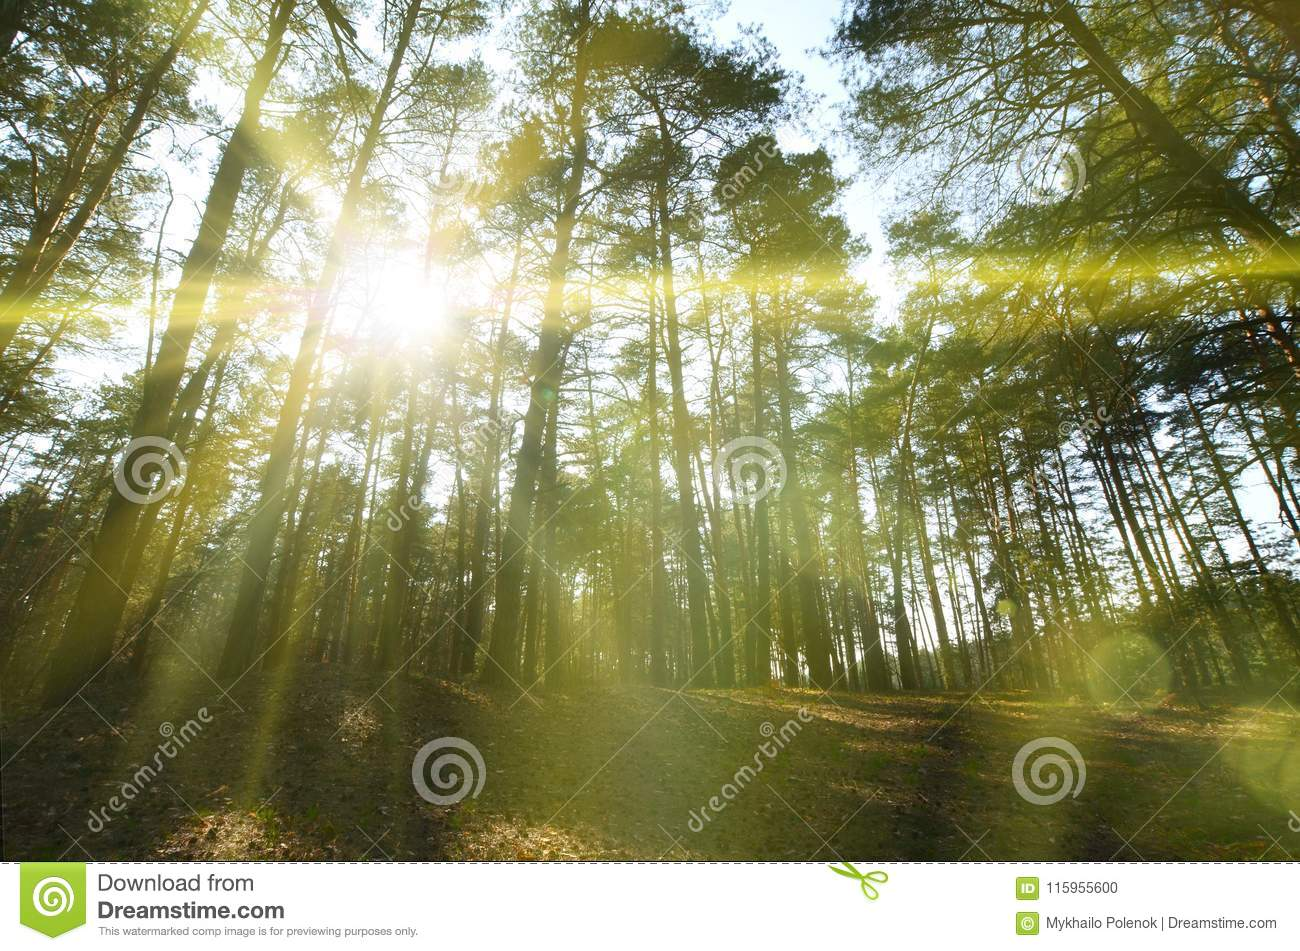 Spring sunny landscape in a pine forest in bright sunlight. Cozy forest space among the pines, dotted with fallen cones and conif